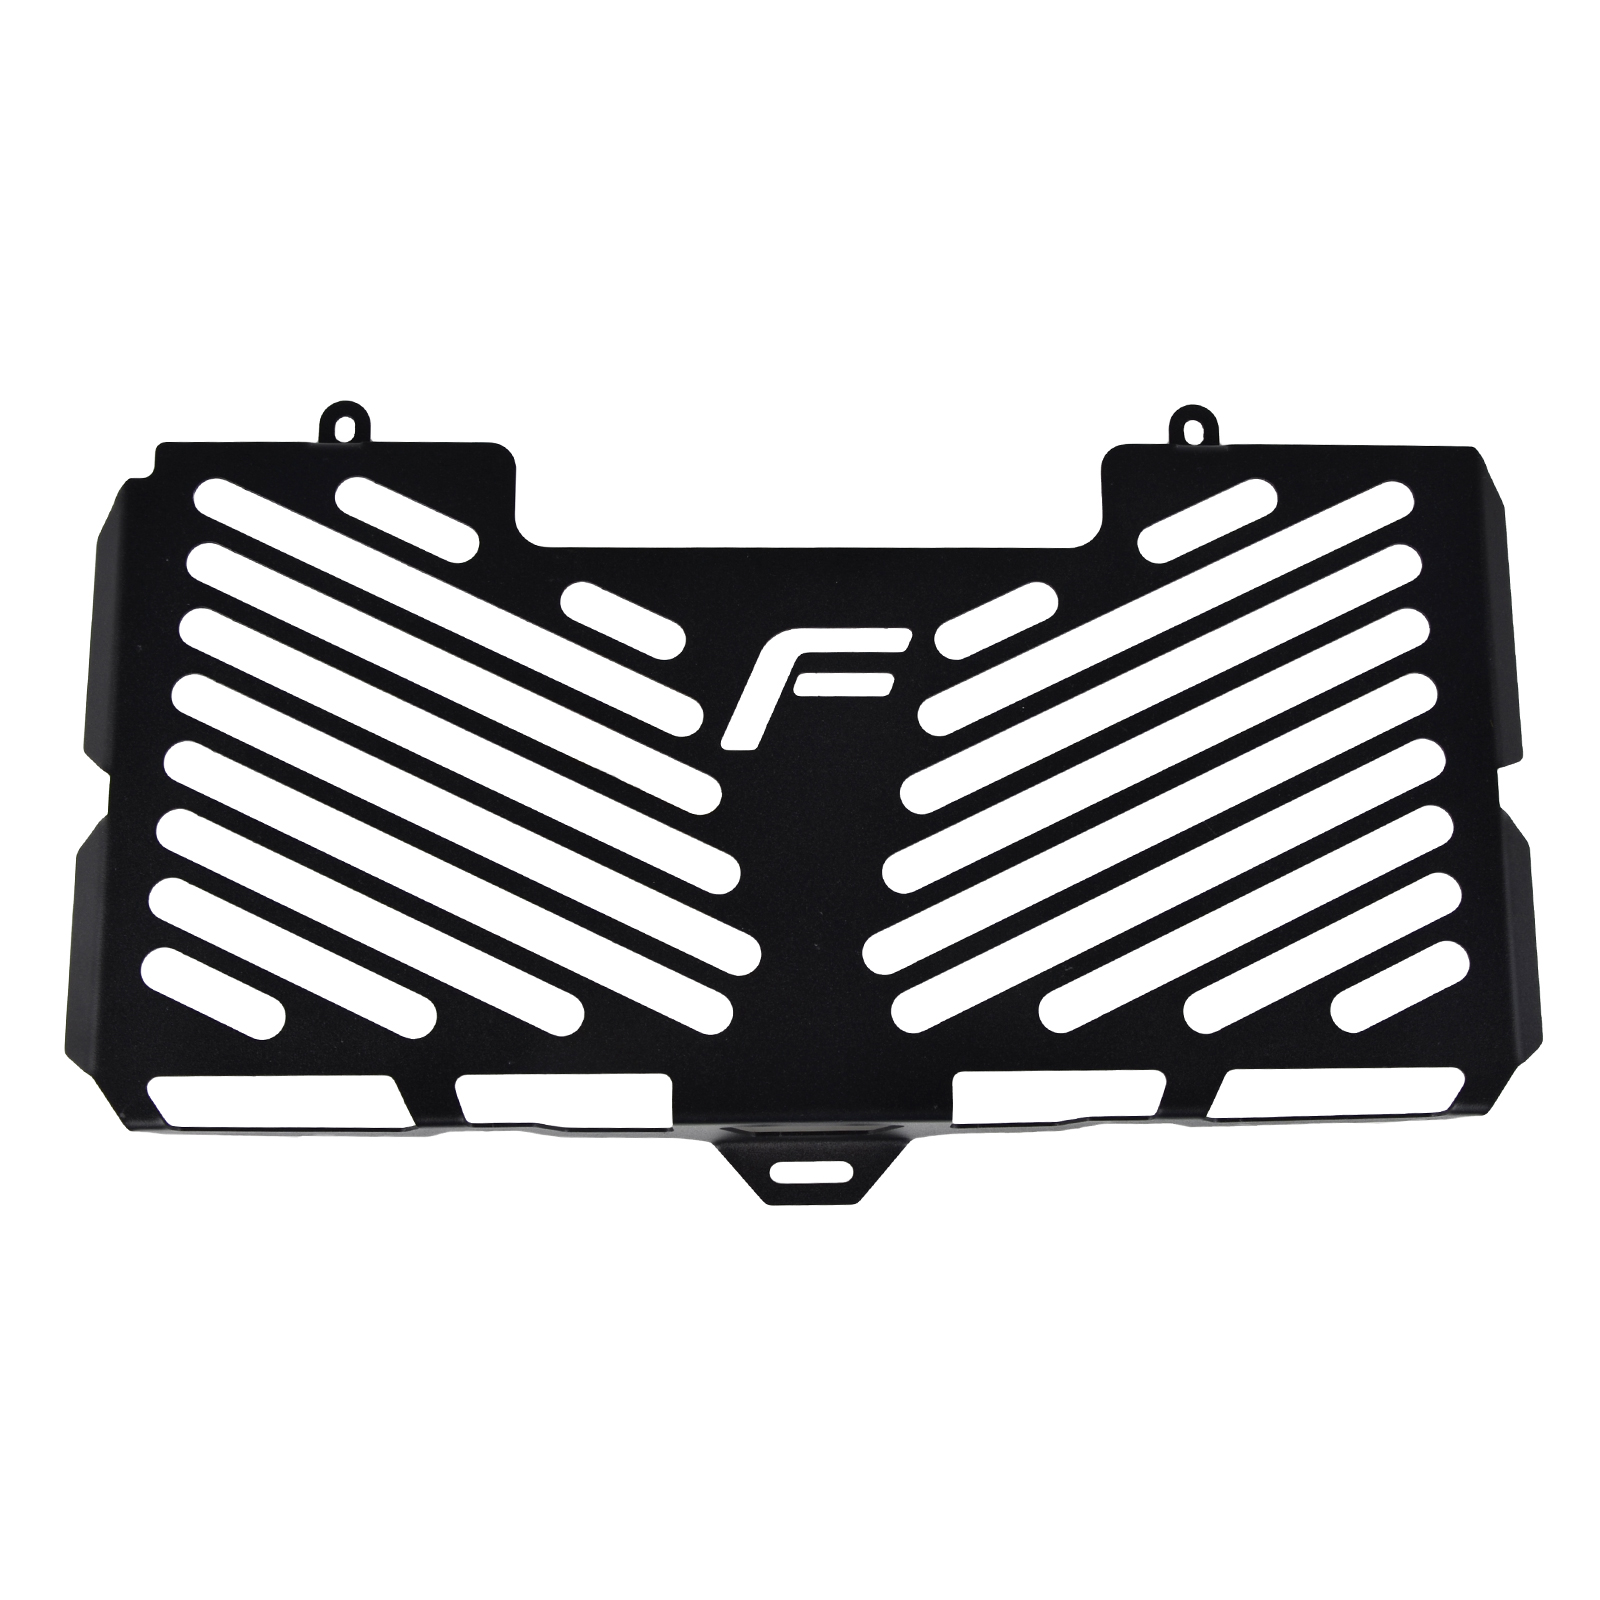 for bmw f650gs f700gs f800gs f 650 700 800 gs 2008 2016 motorcycle 2000 BMW F650 radiator grill cover protector guard for bmw f800r f800s f650gs f700gs 2006 2016 f 800r